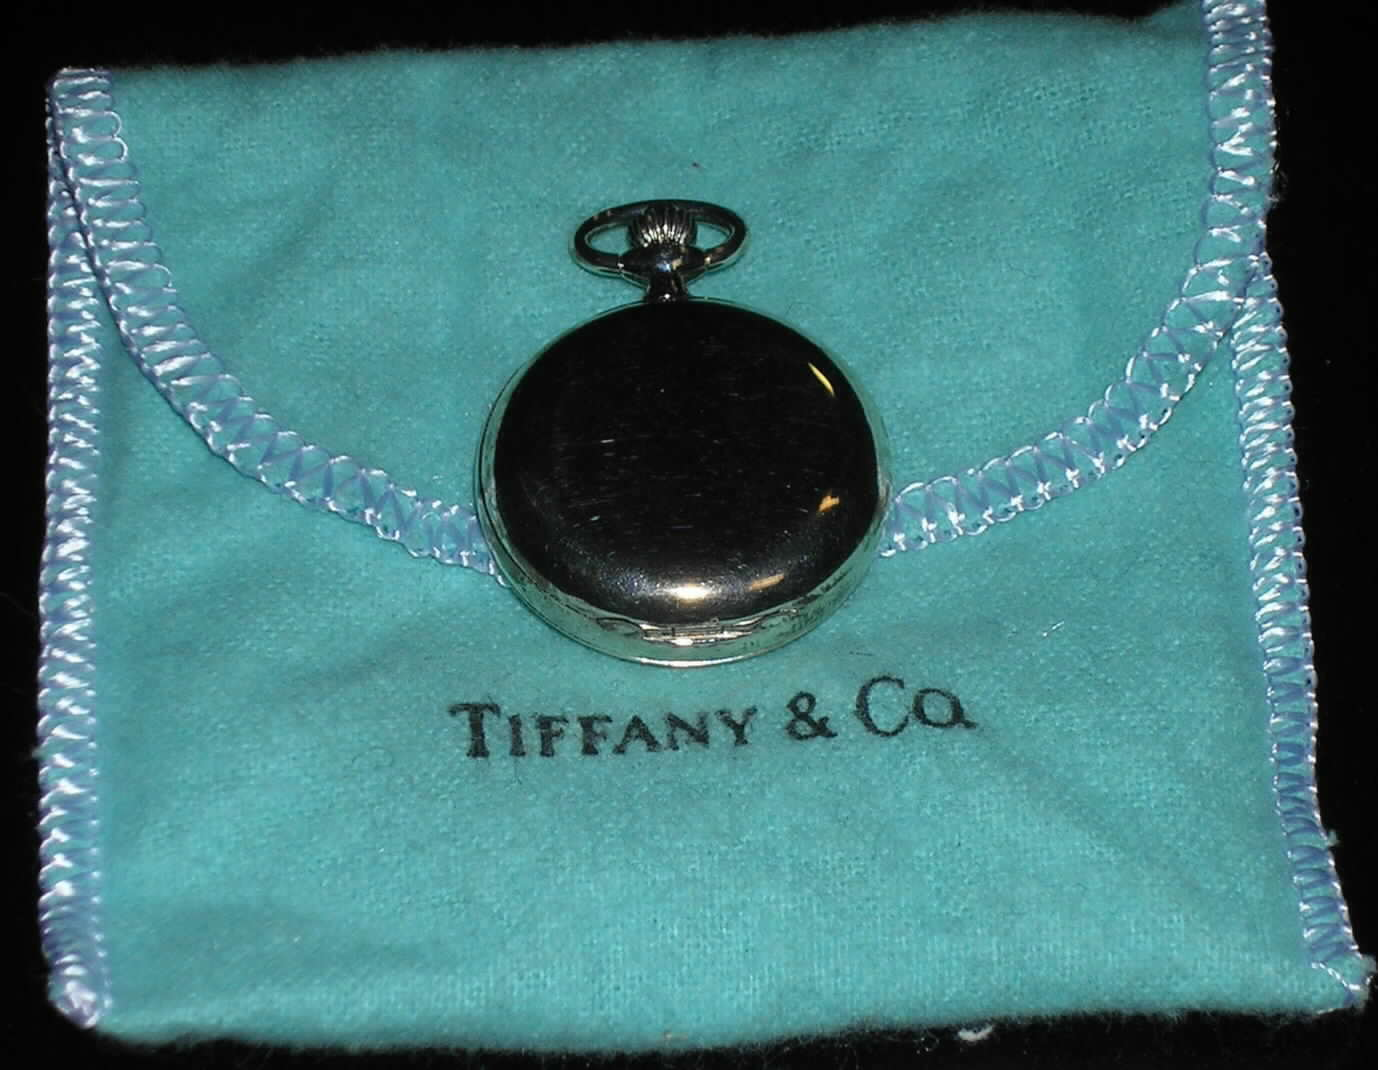 tiffany case questions Explore questions with answers, test video - pinterestcom.